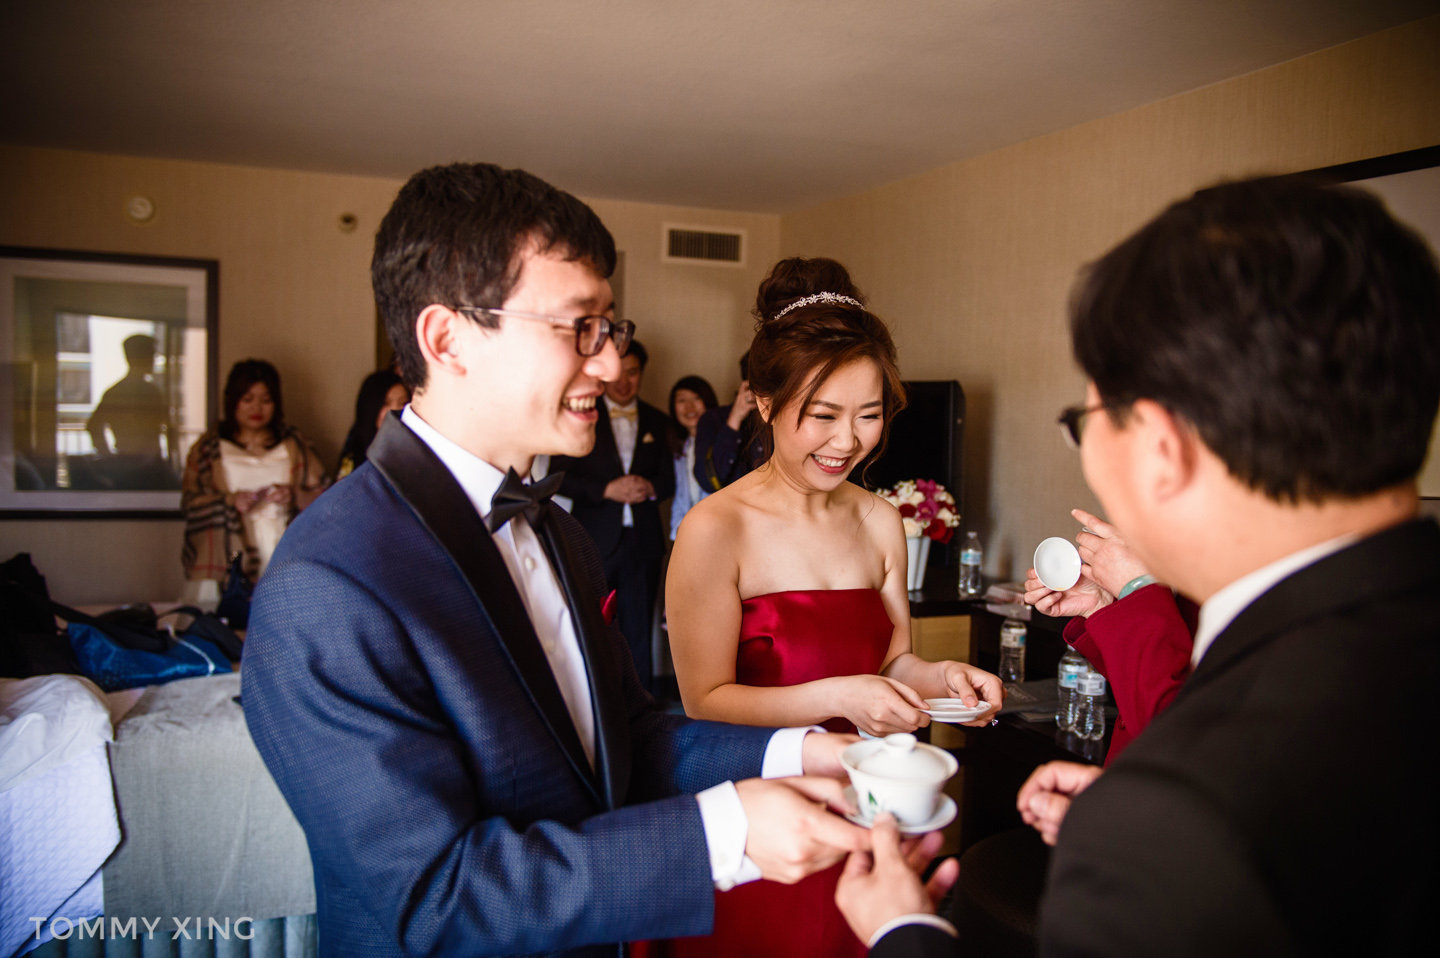 Los Angeles Wedding Photographer 洛杉矶婚礼婚纱摄影师 Tommy Xing-59.JPG